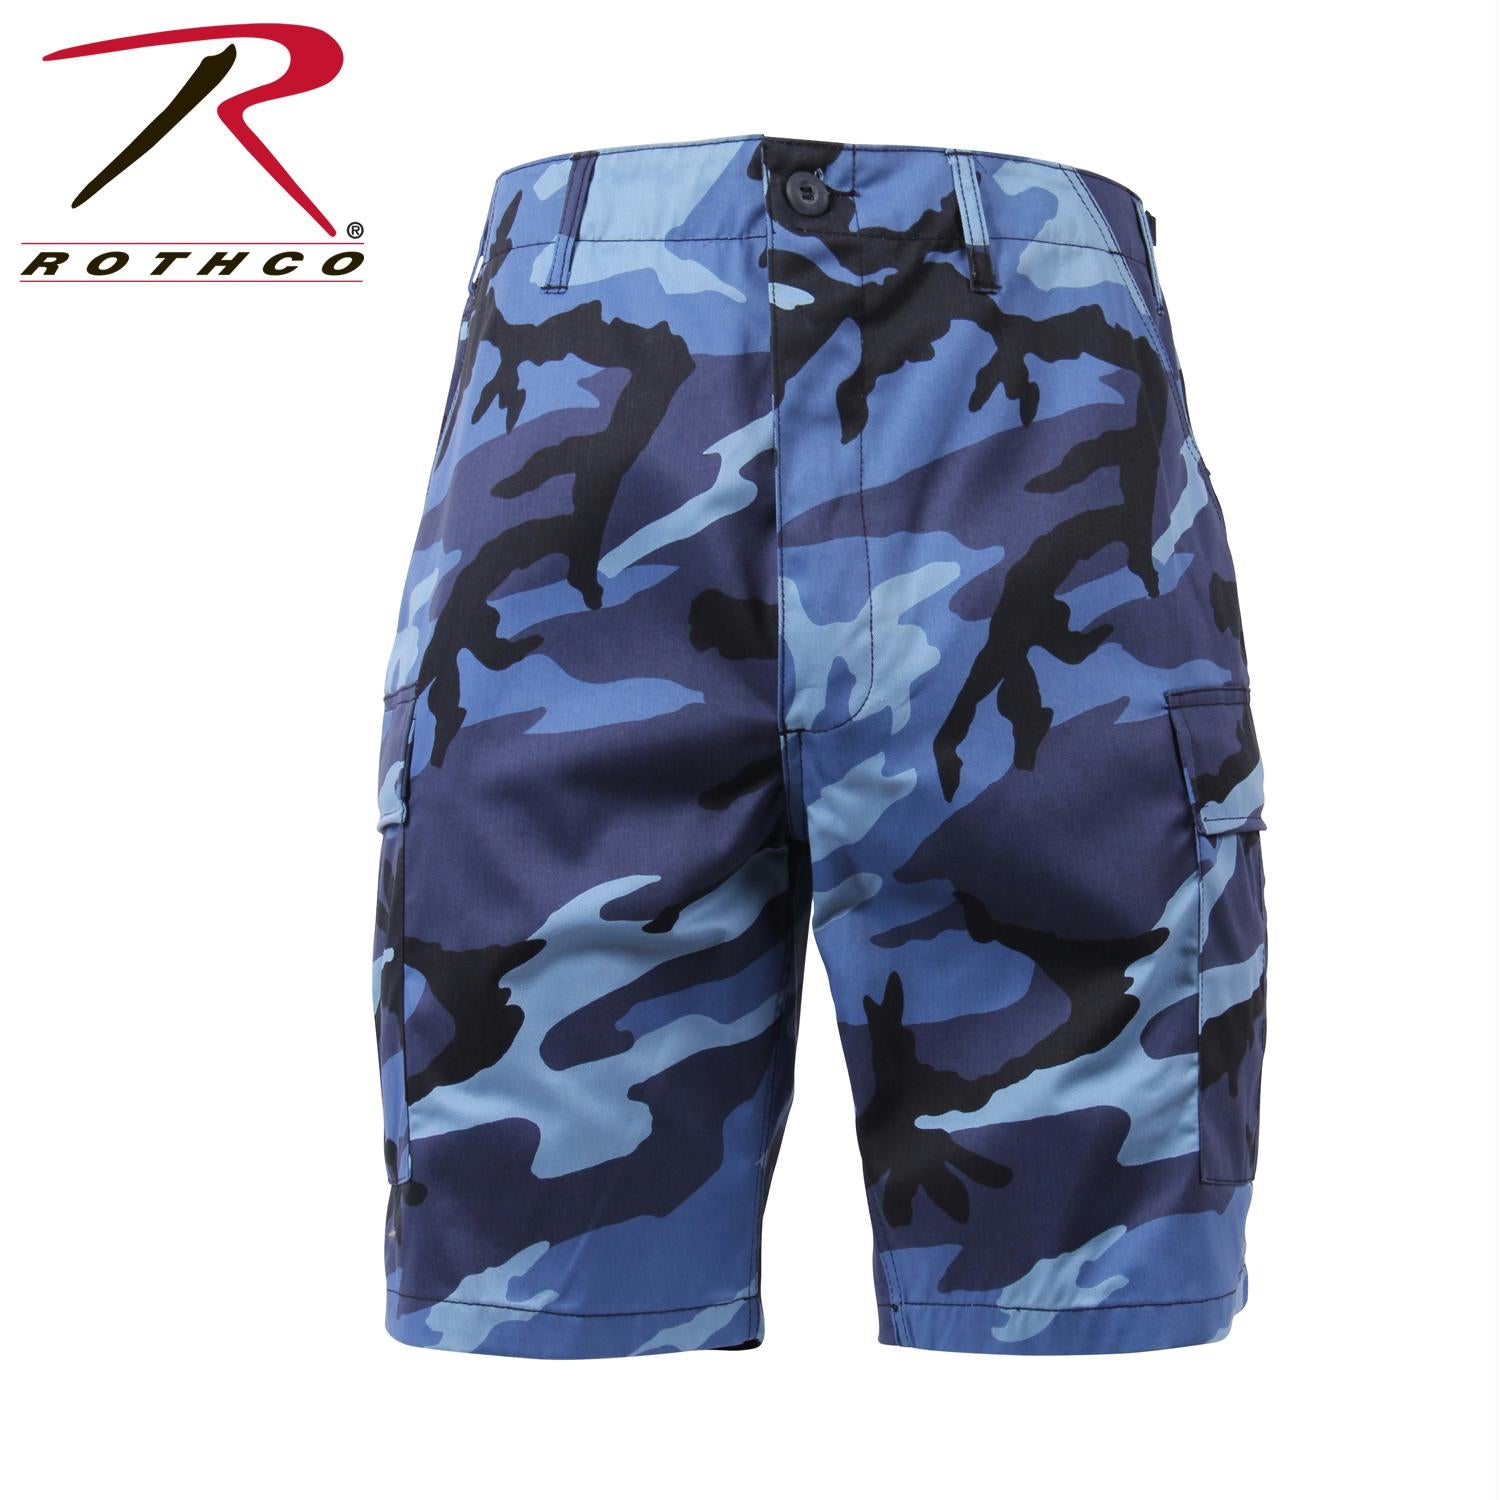 Rothco Colored Camo BDU Shorts - Sky Blue Camo / S